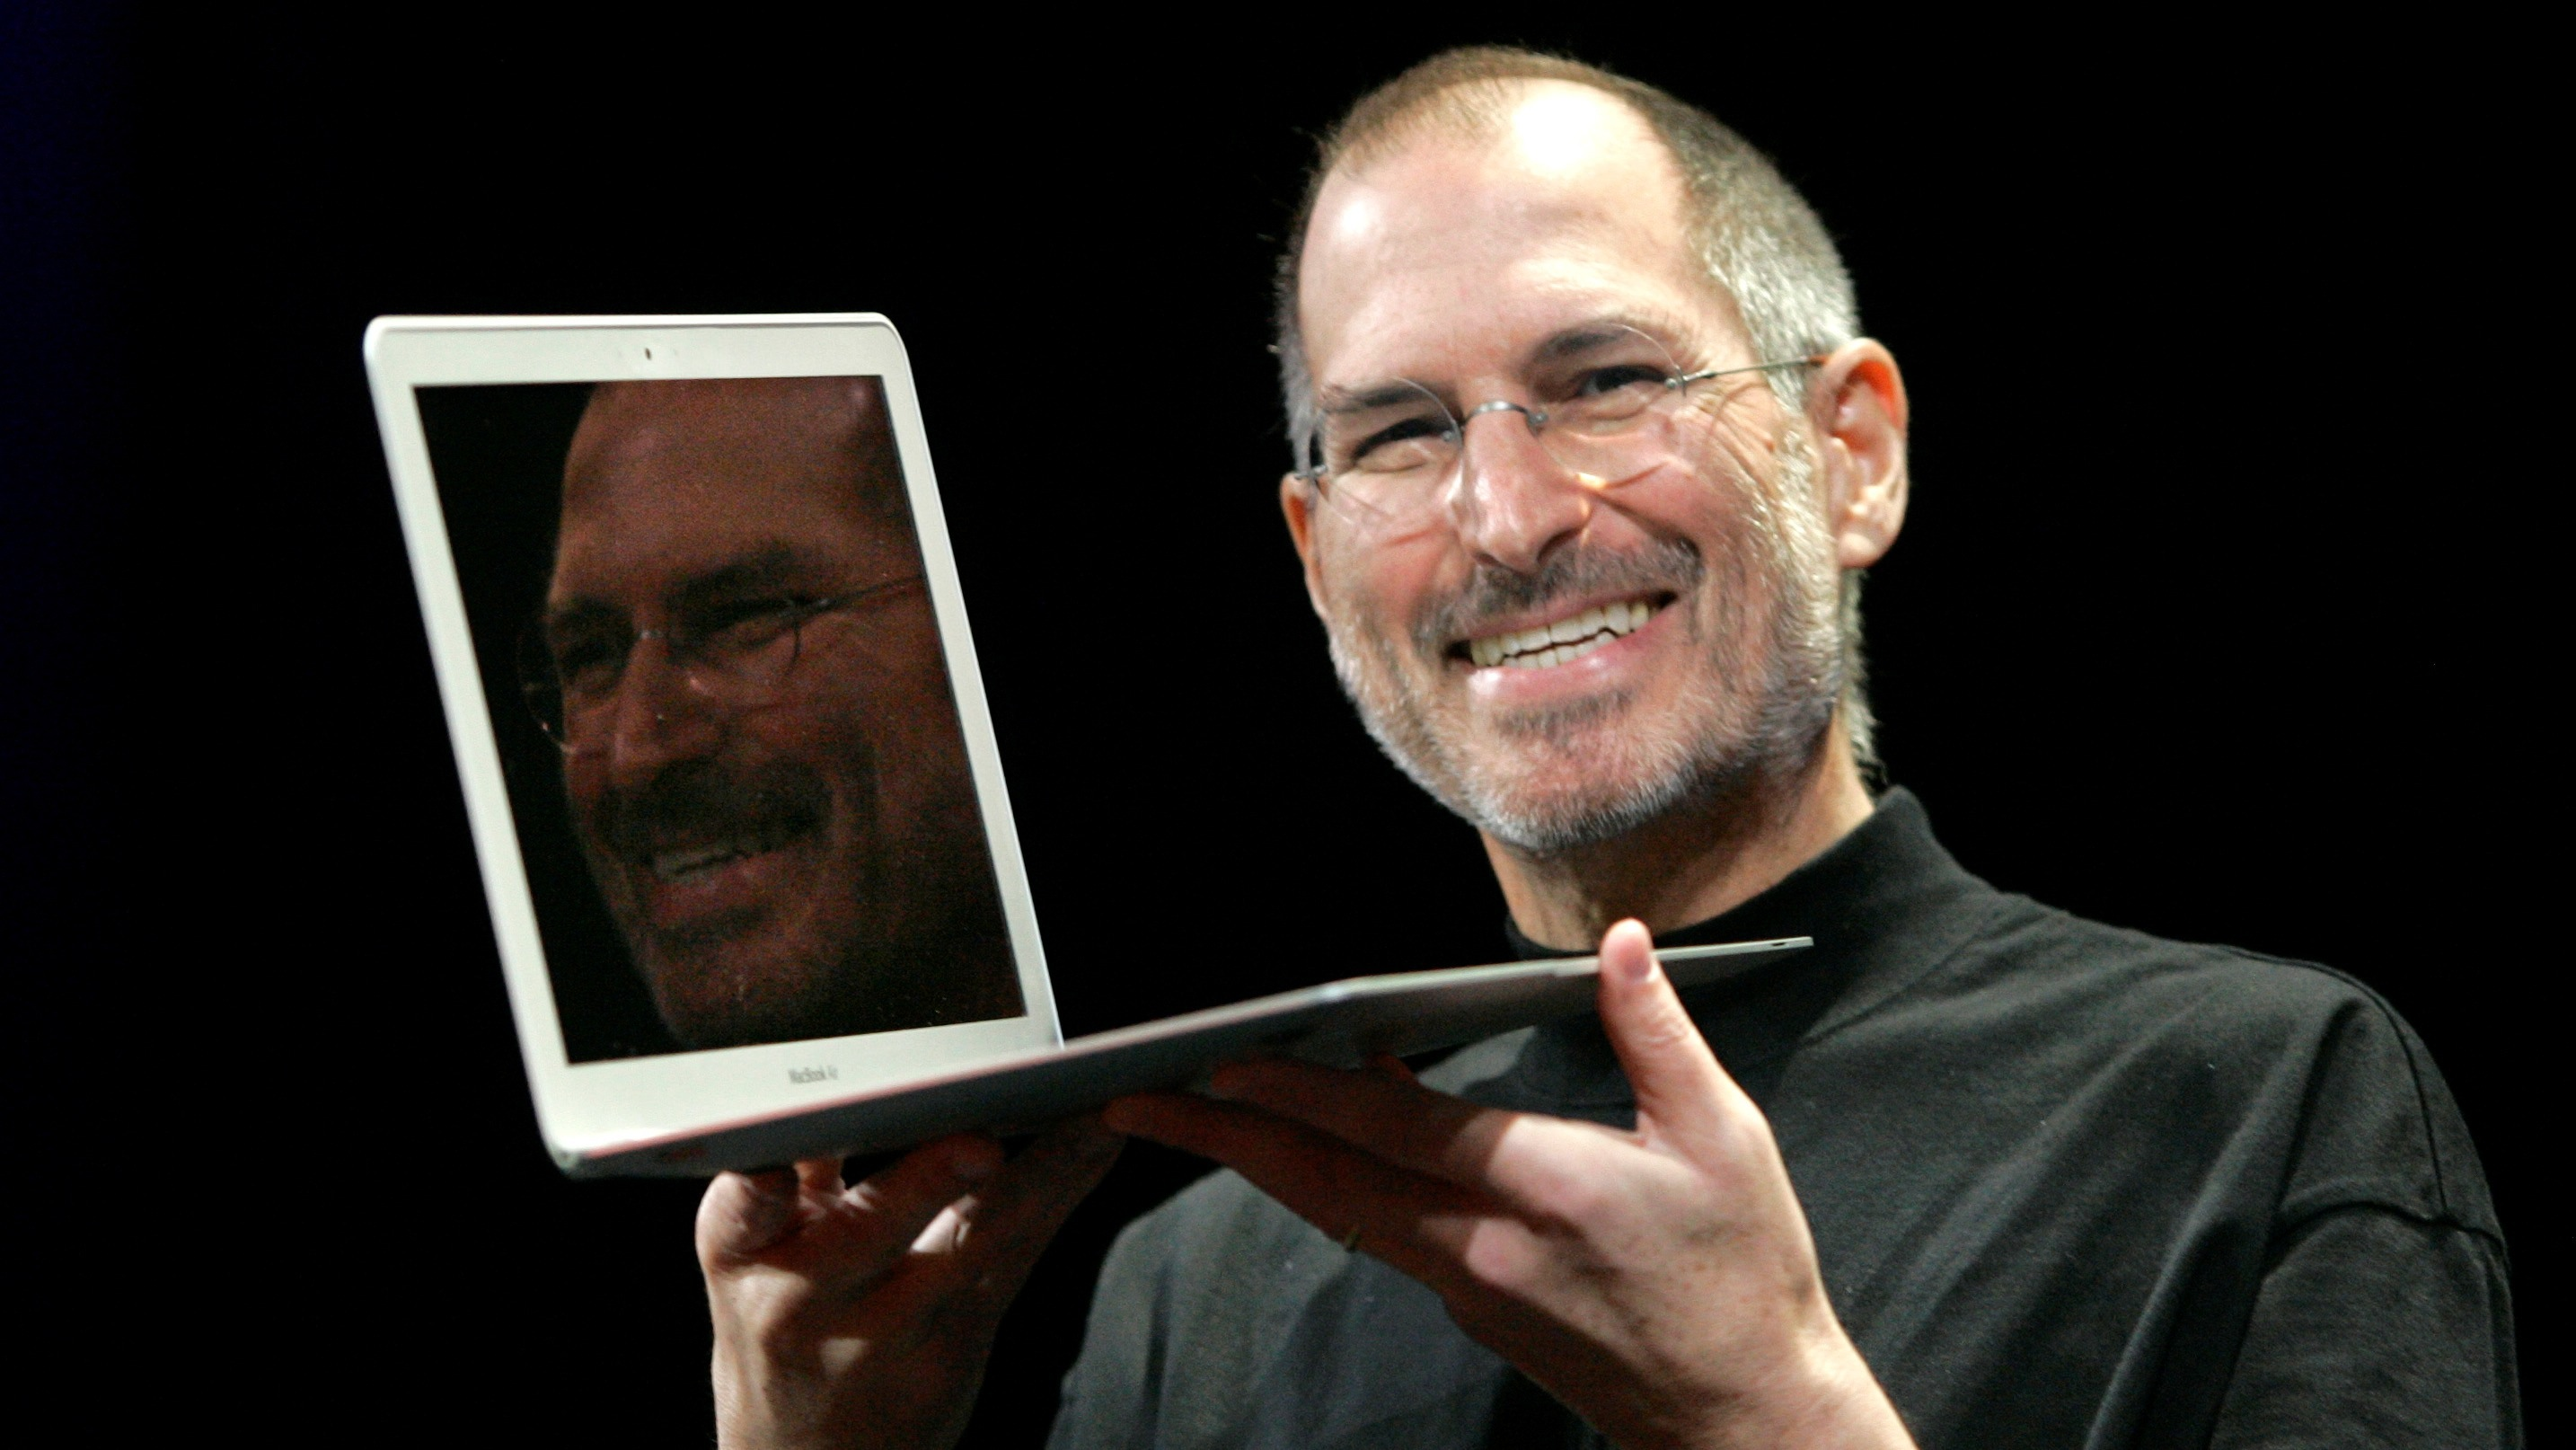 Apple CEO Steve Jobs holds up the new MacBook Air while giving the keynote address at Apple MacWorld Conference in San Francisco, Tuesday, Jan. 15, 2008. The super-slim new laptop is less than an inch thick and turns on the moment it's opened. (AP Photo/Jeff Chiu)